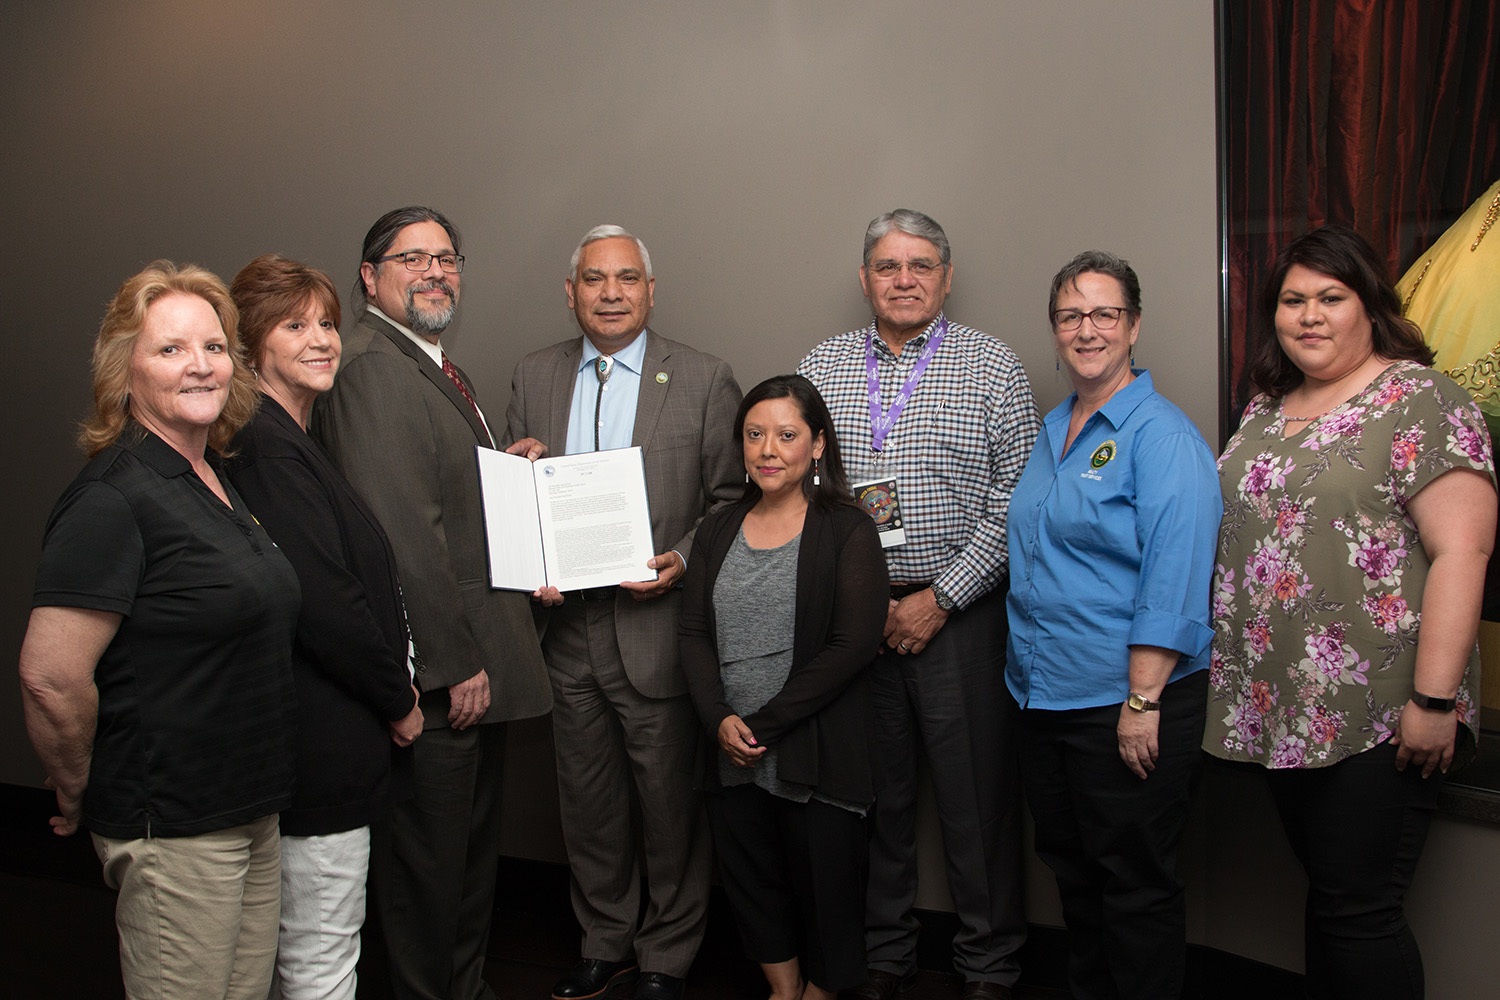 Muscogee (Creek) Nation Signs Fountainhead Land into Trust After Nearly 13 Years